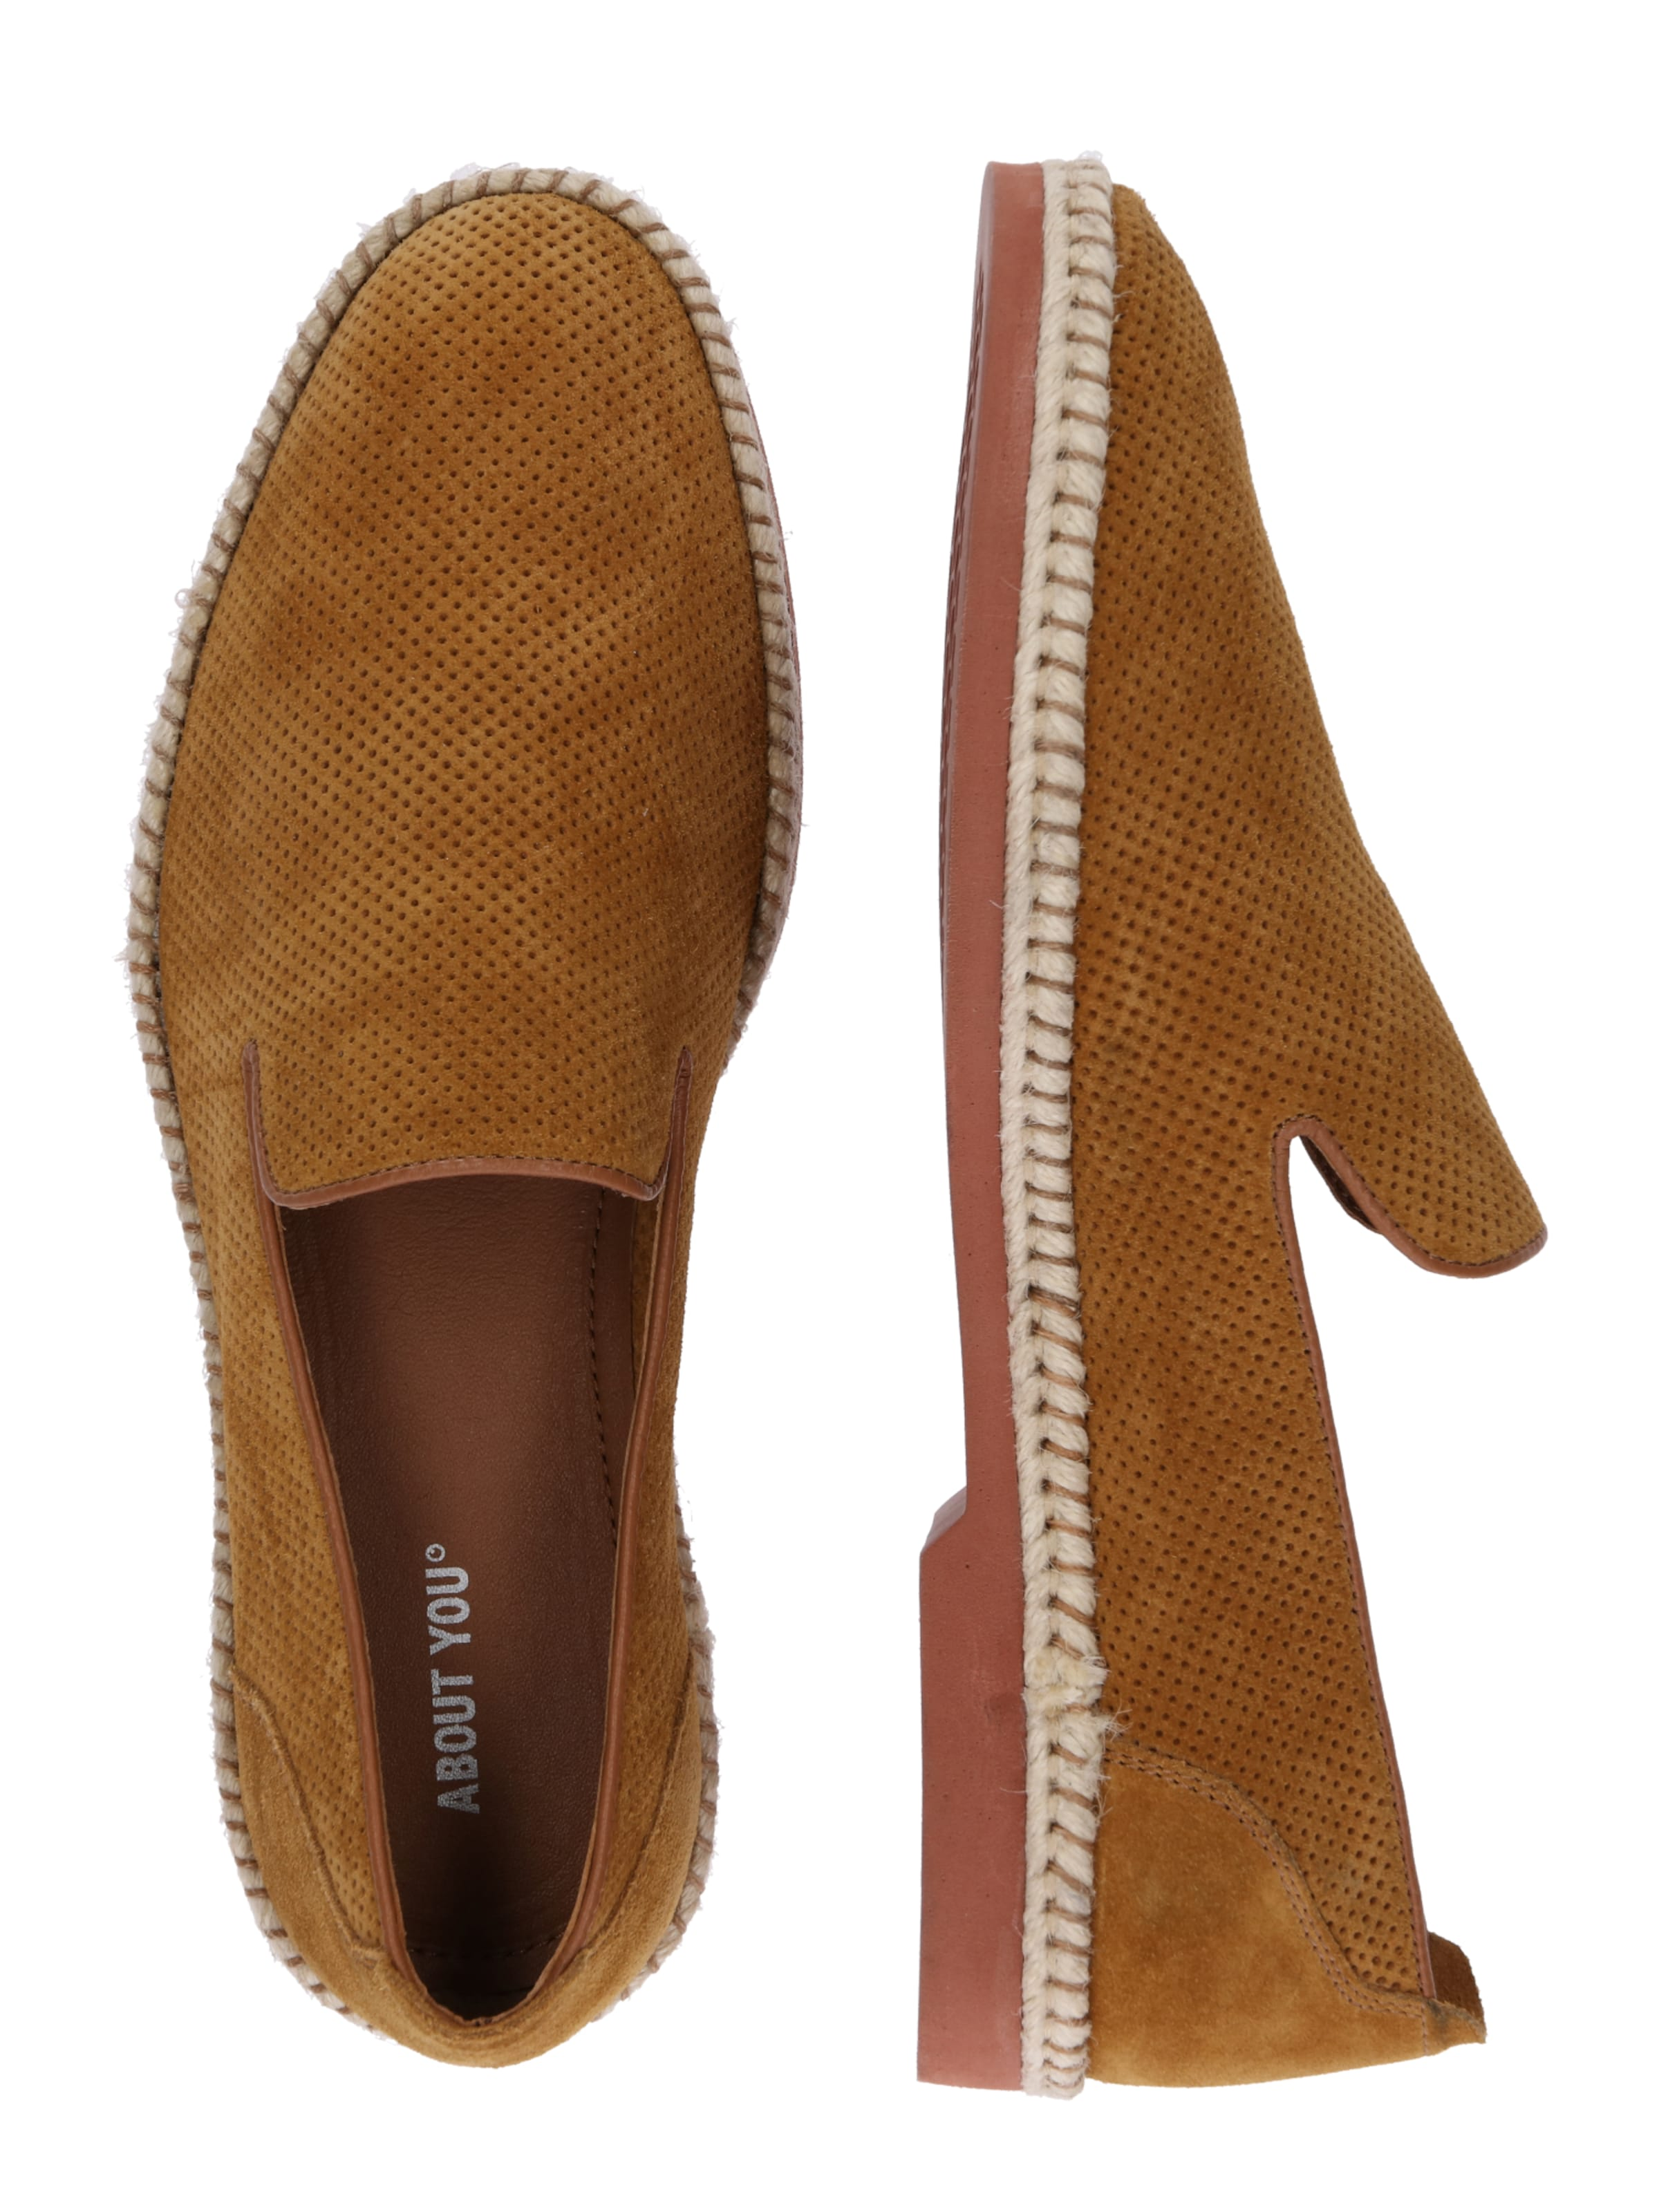 About You 'eddi' Cognac Slipper In kXiTwZPOu